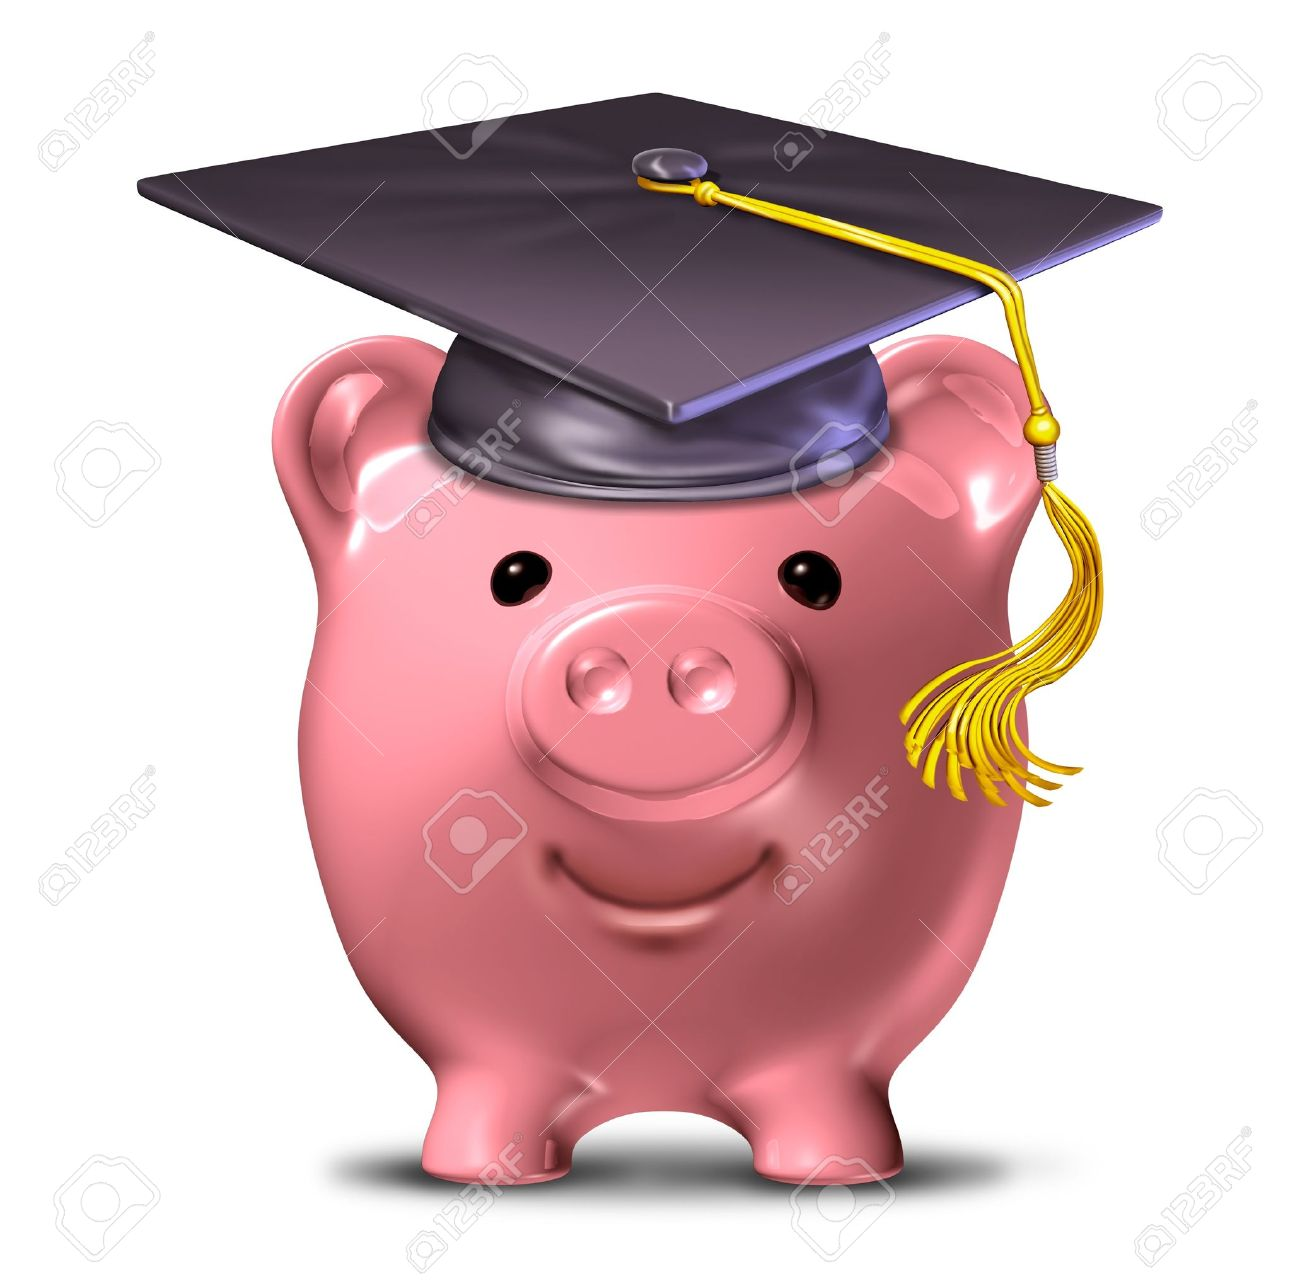 Saving for an education represented by a graduation cap and school mortar board on a pink savings piggy bank. Stock Photo - 10892096